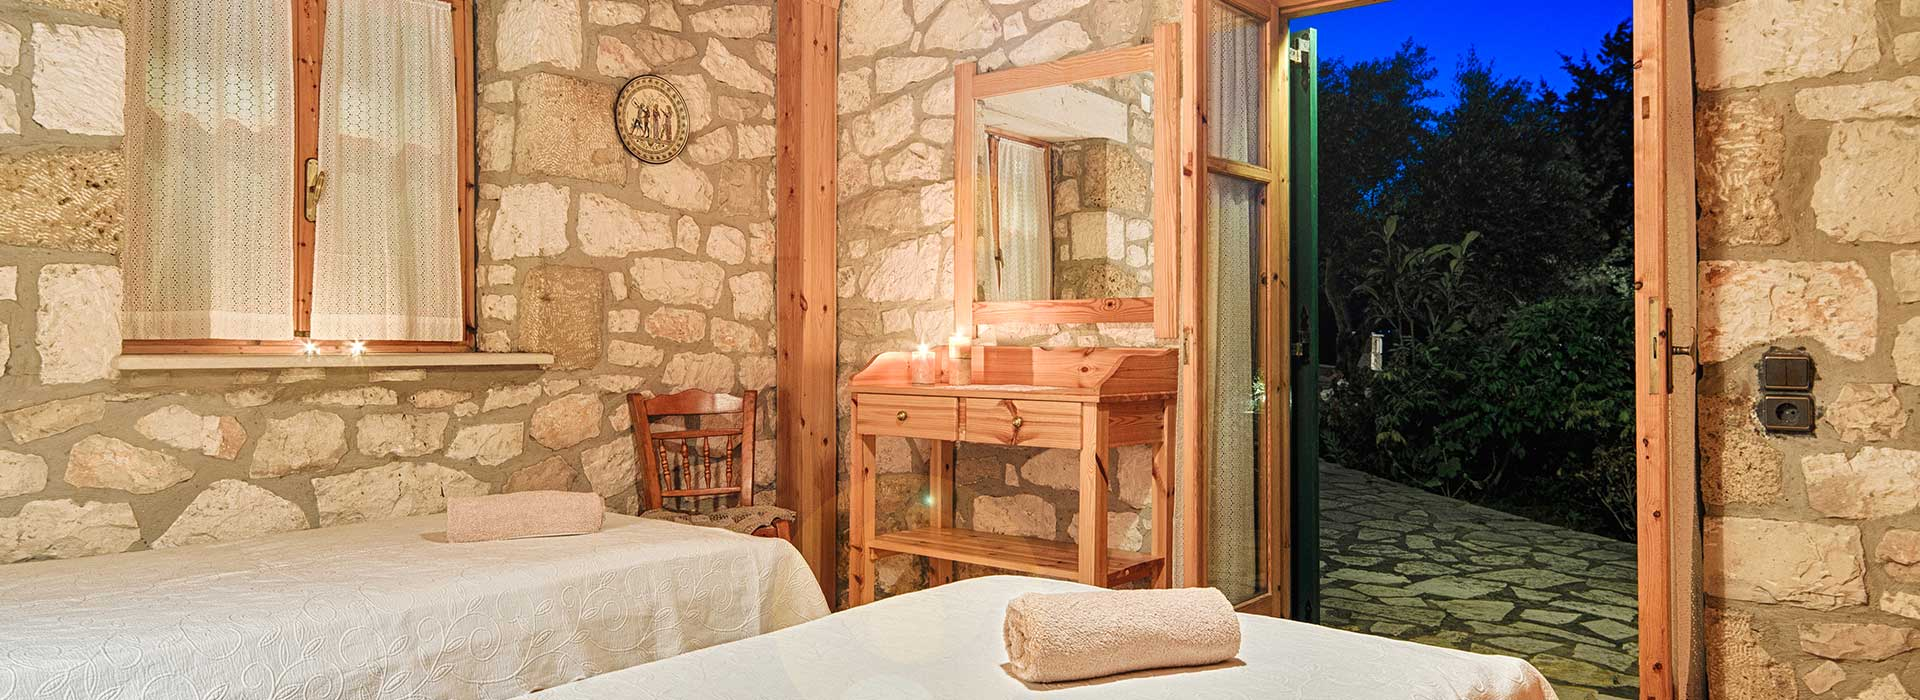 two-bedroom apartment - joanna's traditional stone villas - vasilikos zante zakynthos greece